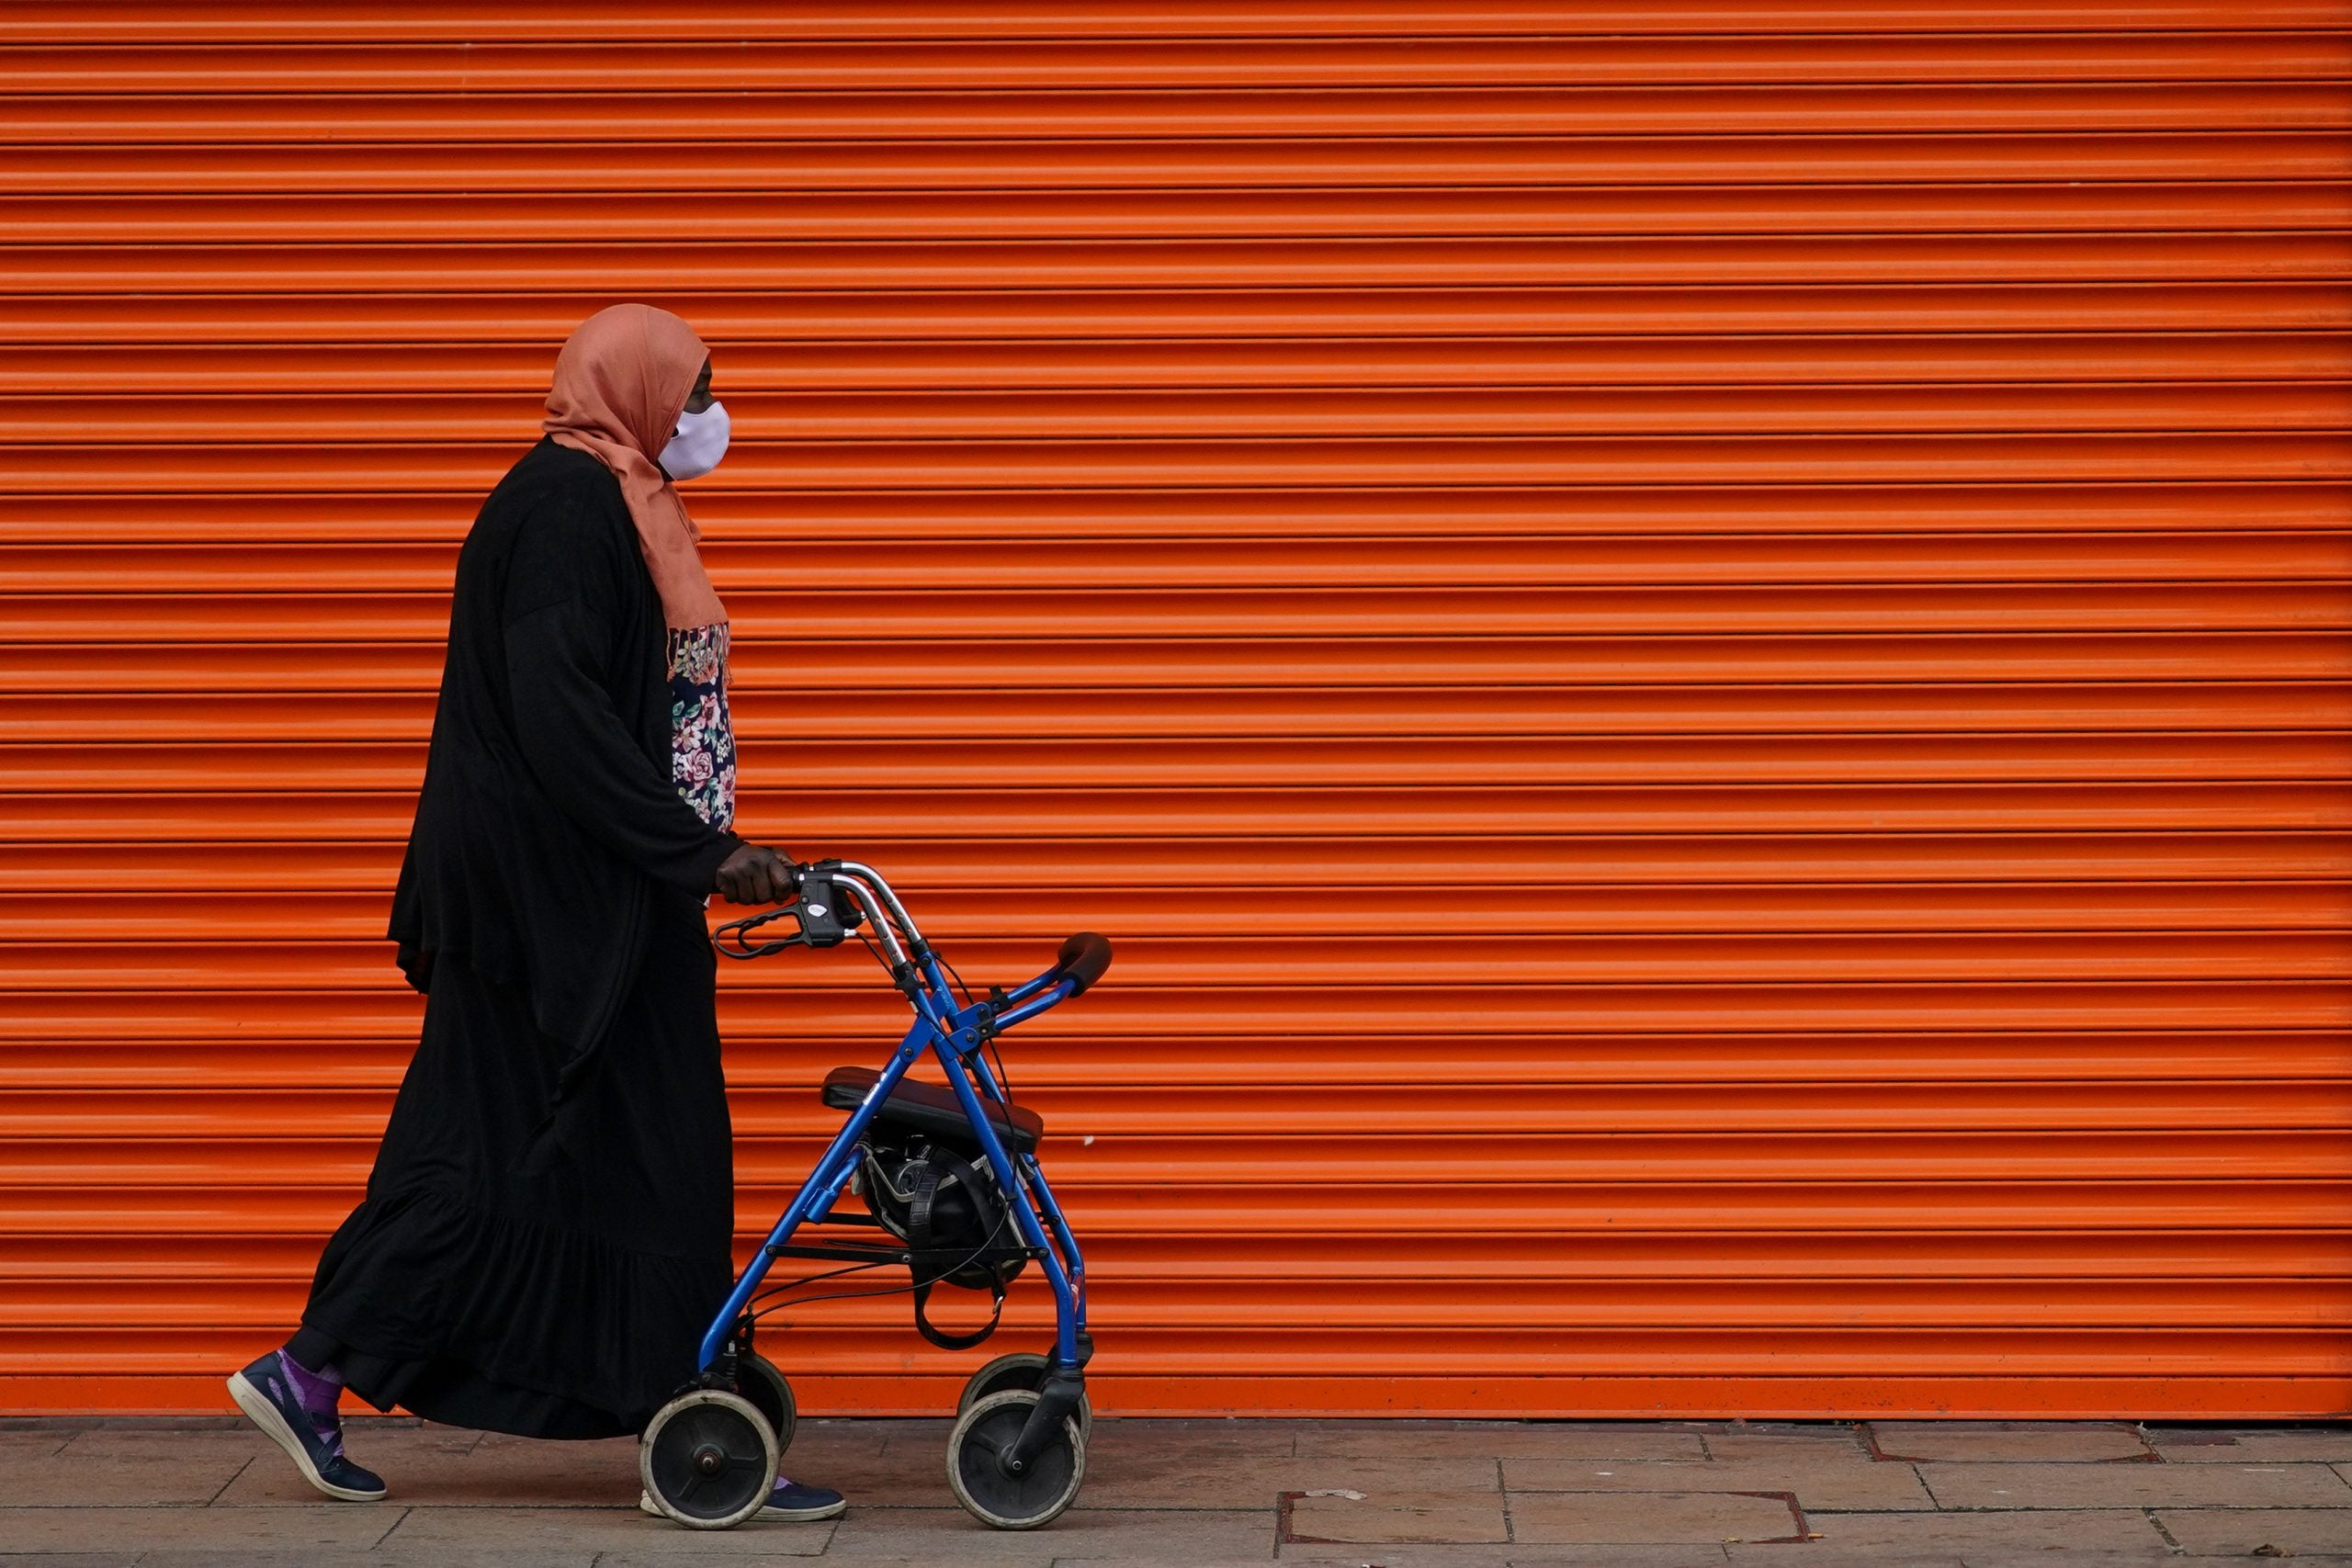 Why another 8.7 million people should now be under lockdown in the UK